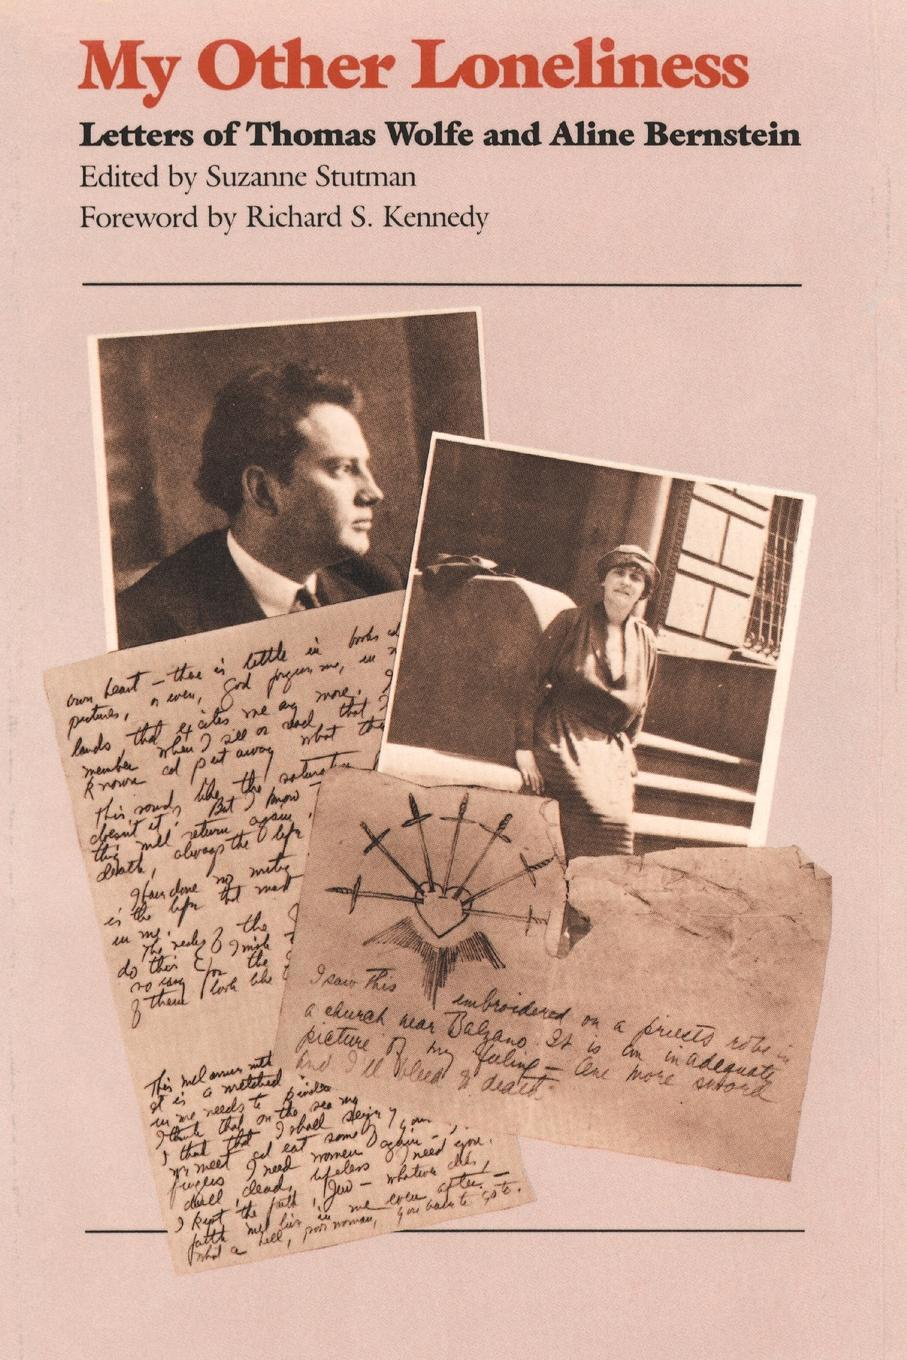 Thomas Wolfe My Other Loneliness. Letters of Thomas Wolfe and Aline Bernstein printio loneliness